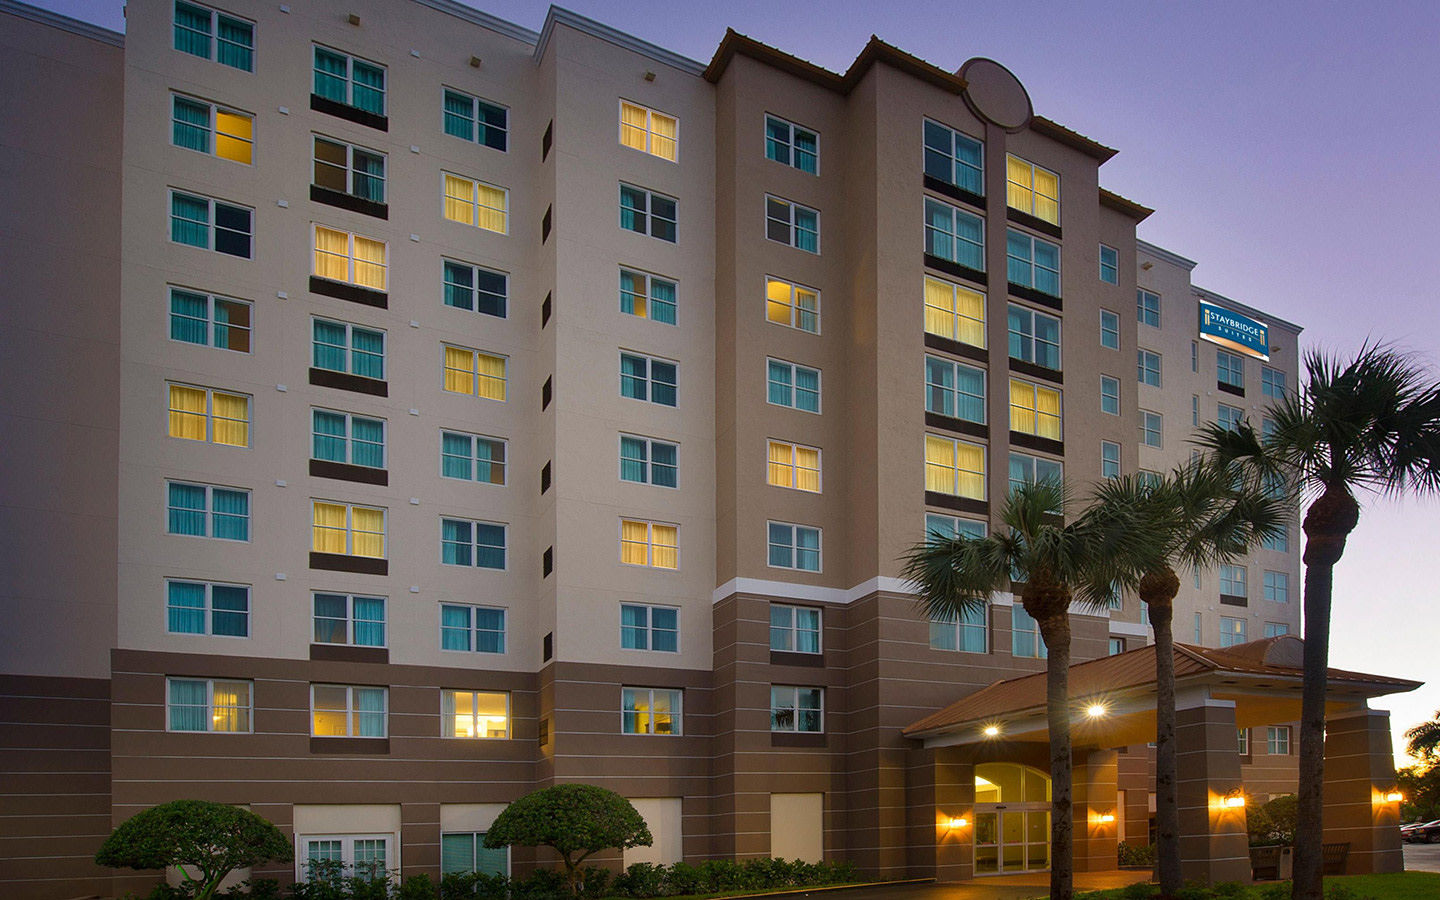 Staybridge Suites Miami - Doral